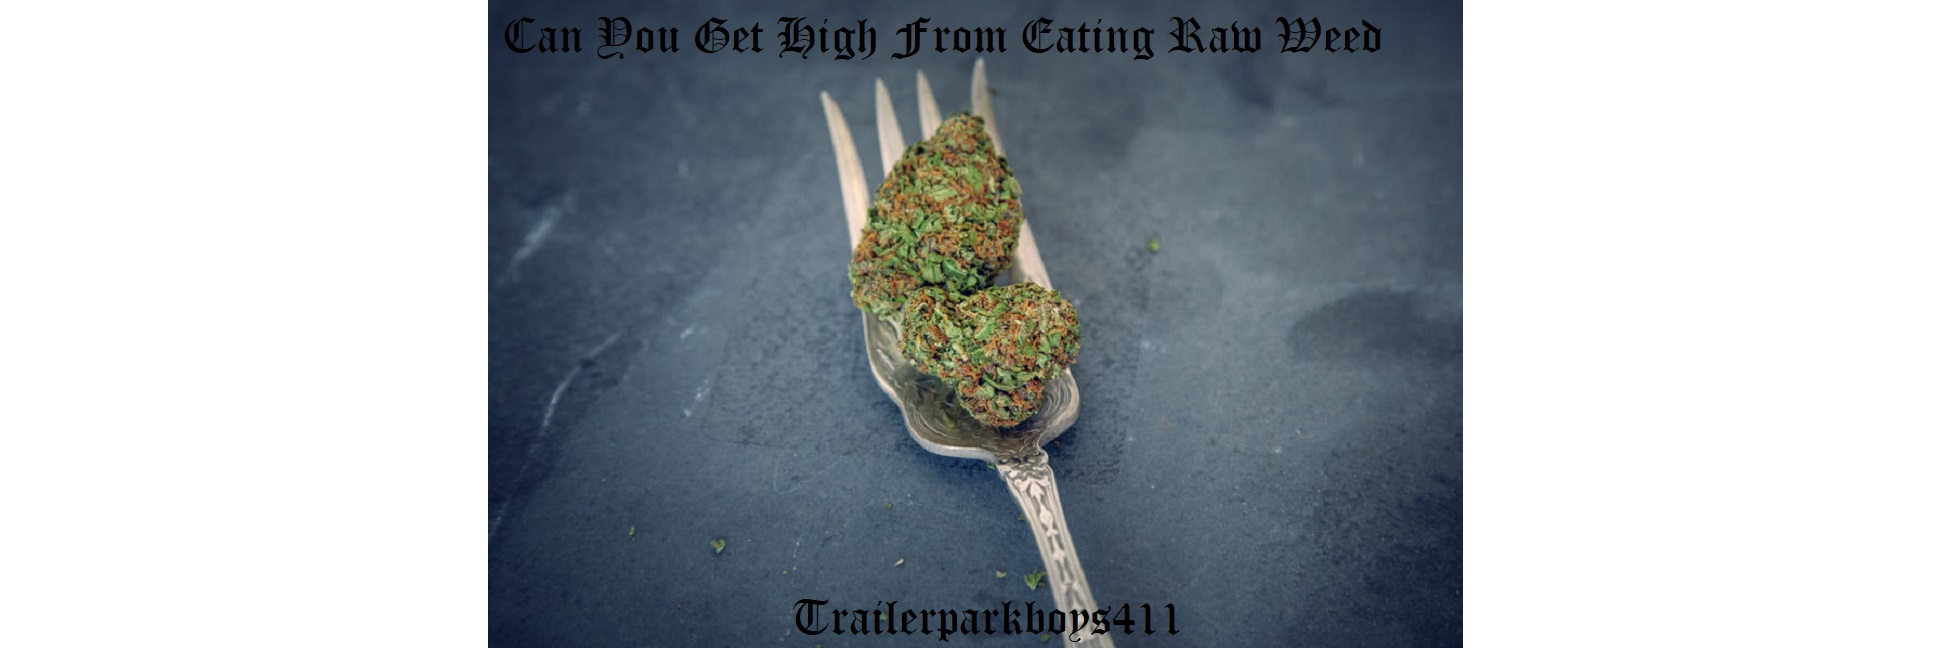 Can You Get High From Eating Raw Weed